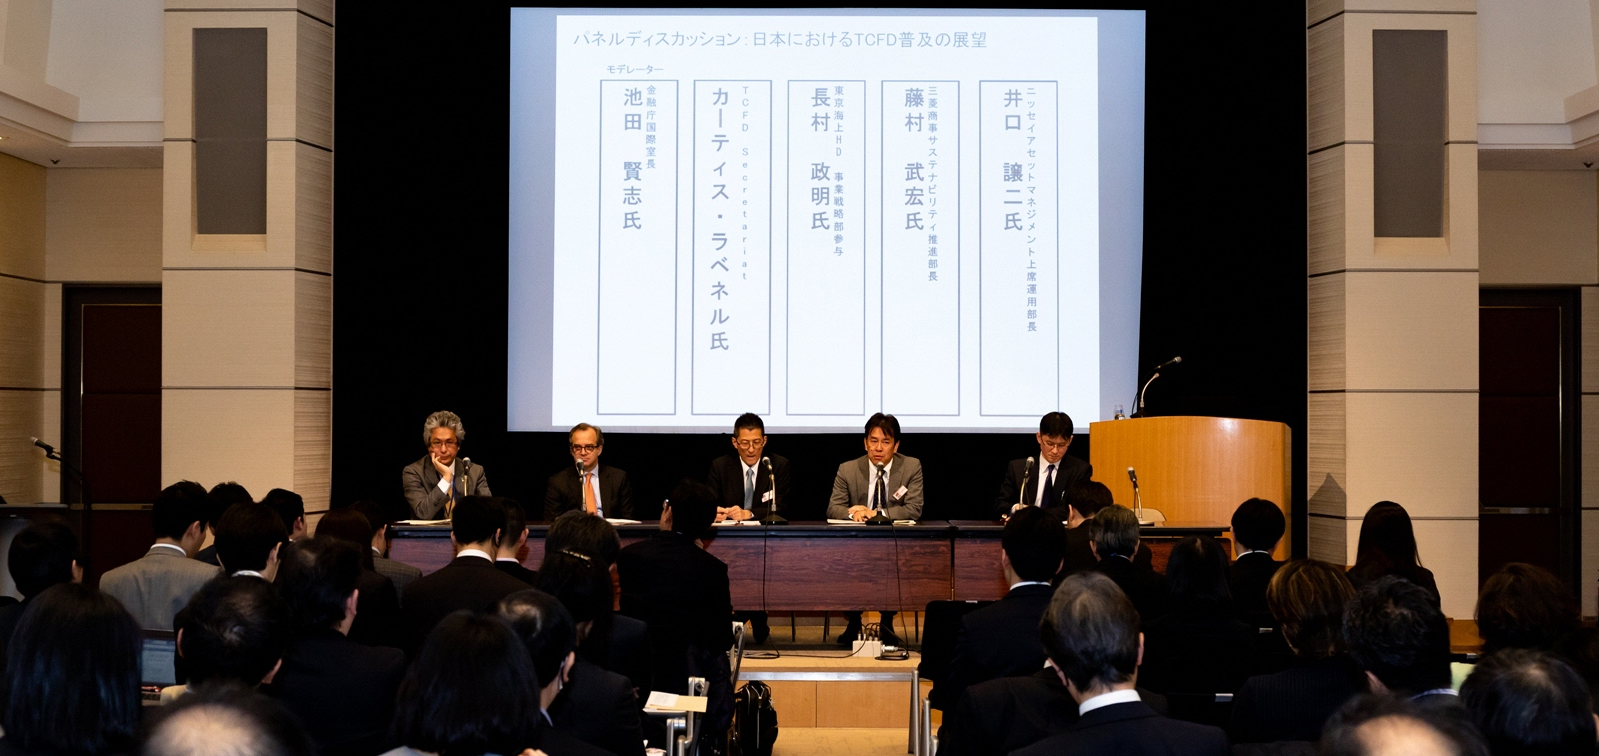 Exchange in Focus: Japan Exchange Group co-hosts TCFD Symposium